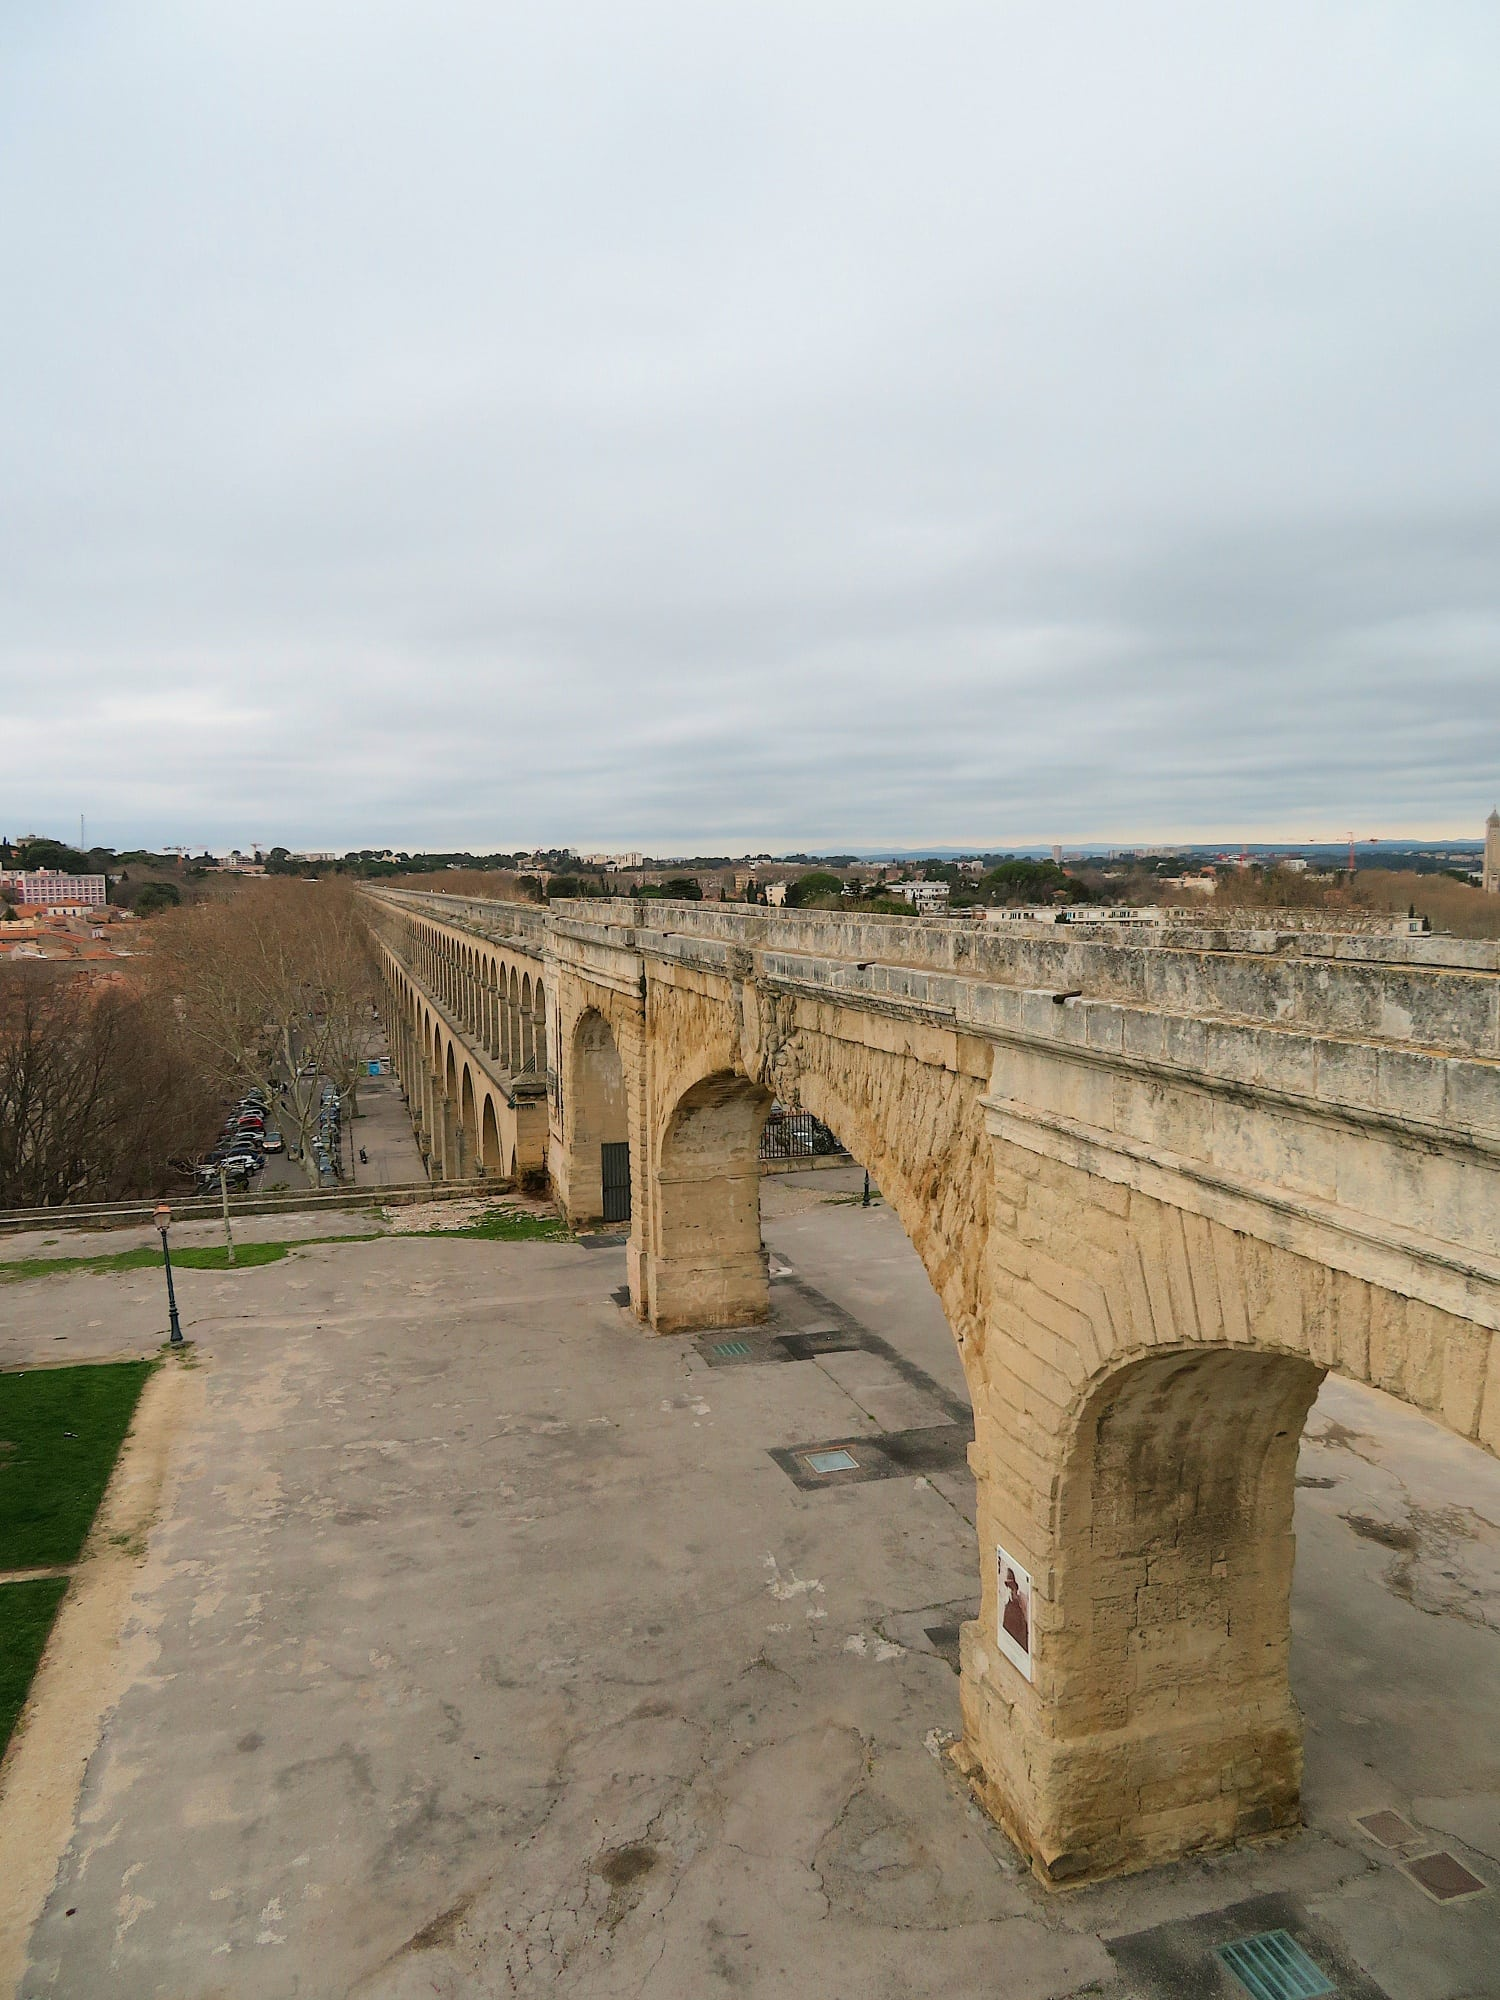 Aquaduc Saint-Clement in Montpellier, France was inspired by the famous Pont du Gard aquaduct